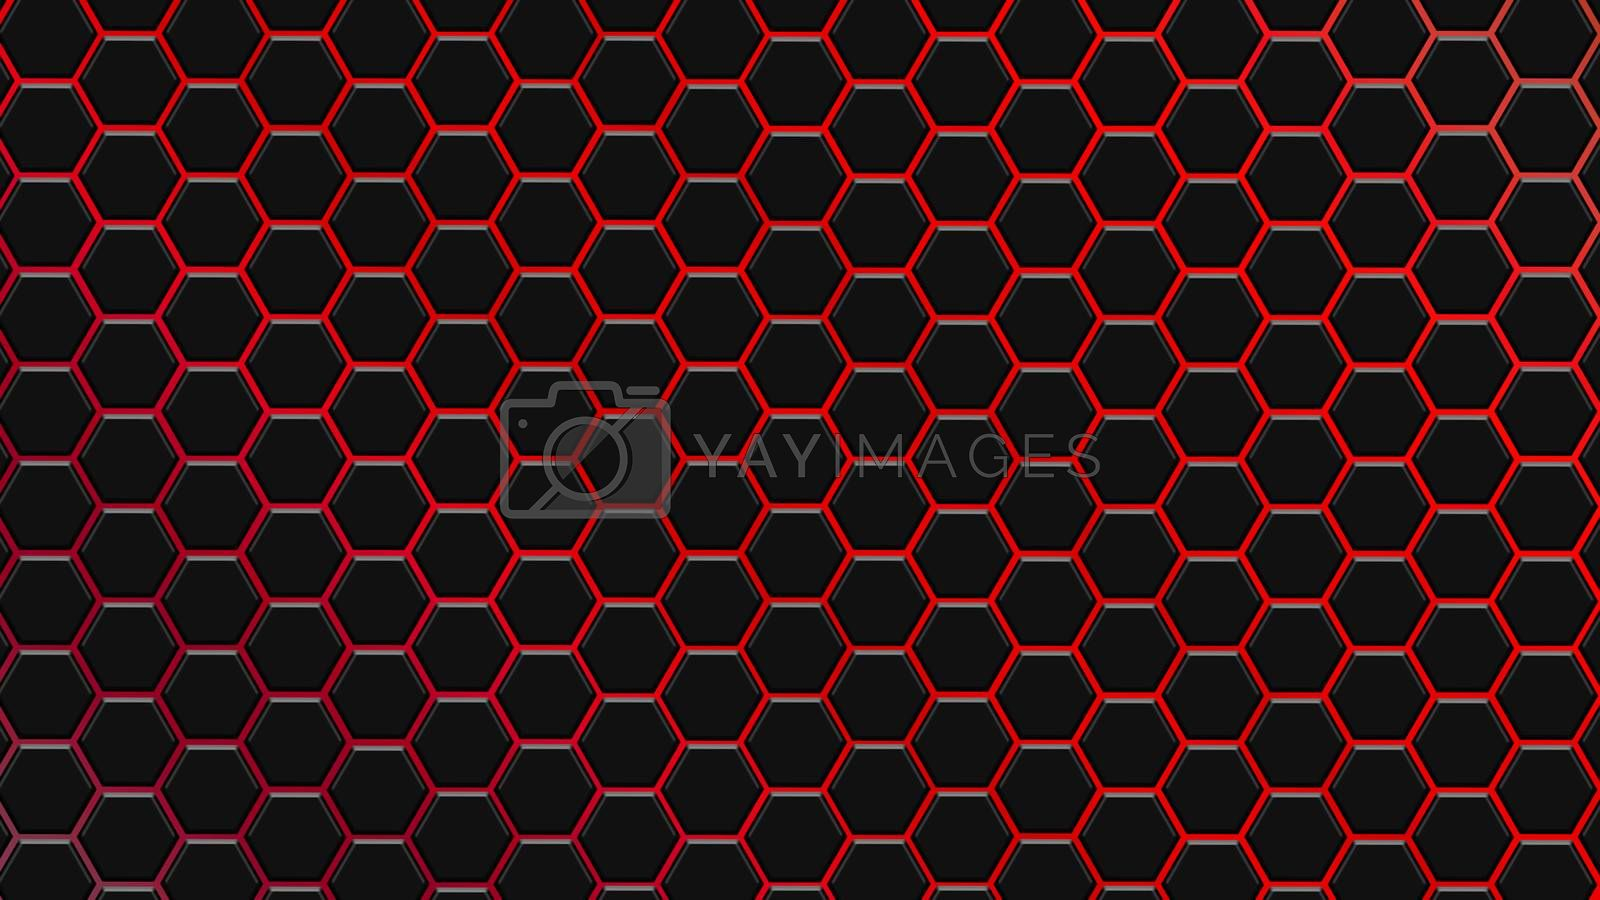 Red hexagonal texture. Abstract background for design.